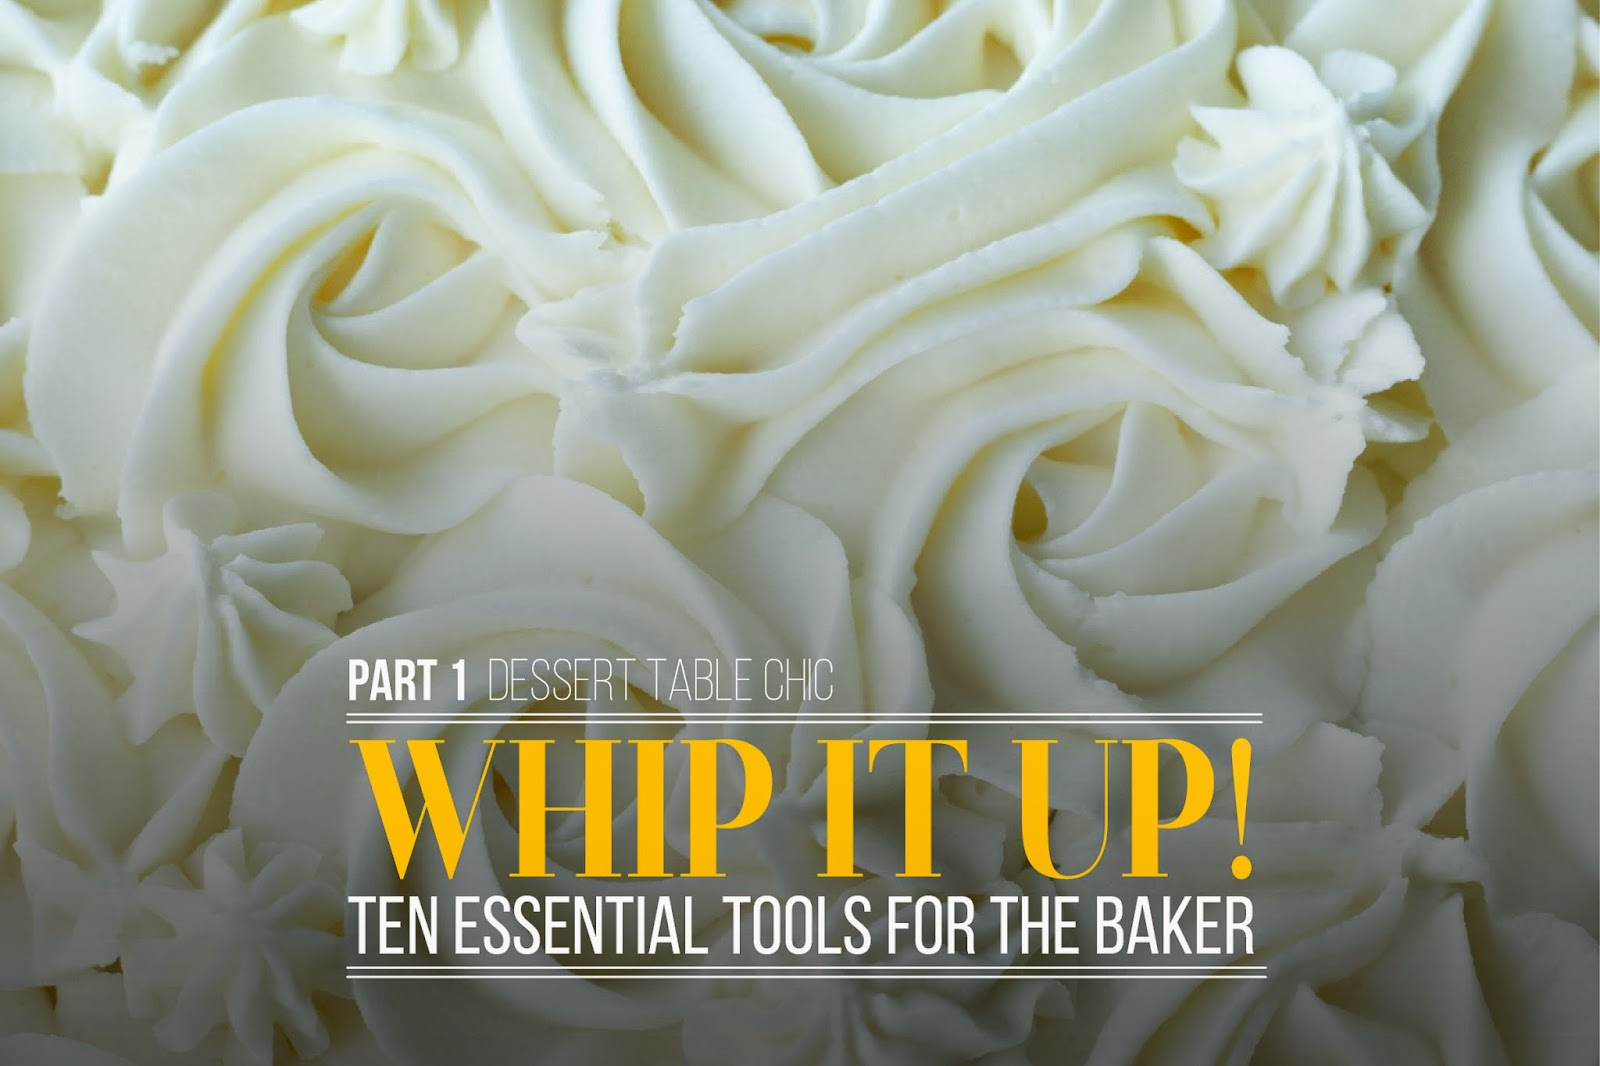 Chic Dessert Table Tips; Whip It Up! 10 tools you should have to create your own desserts